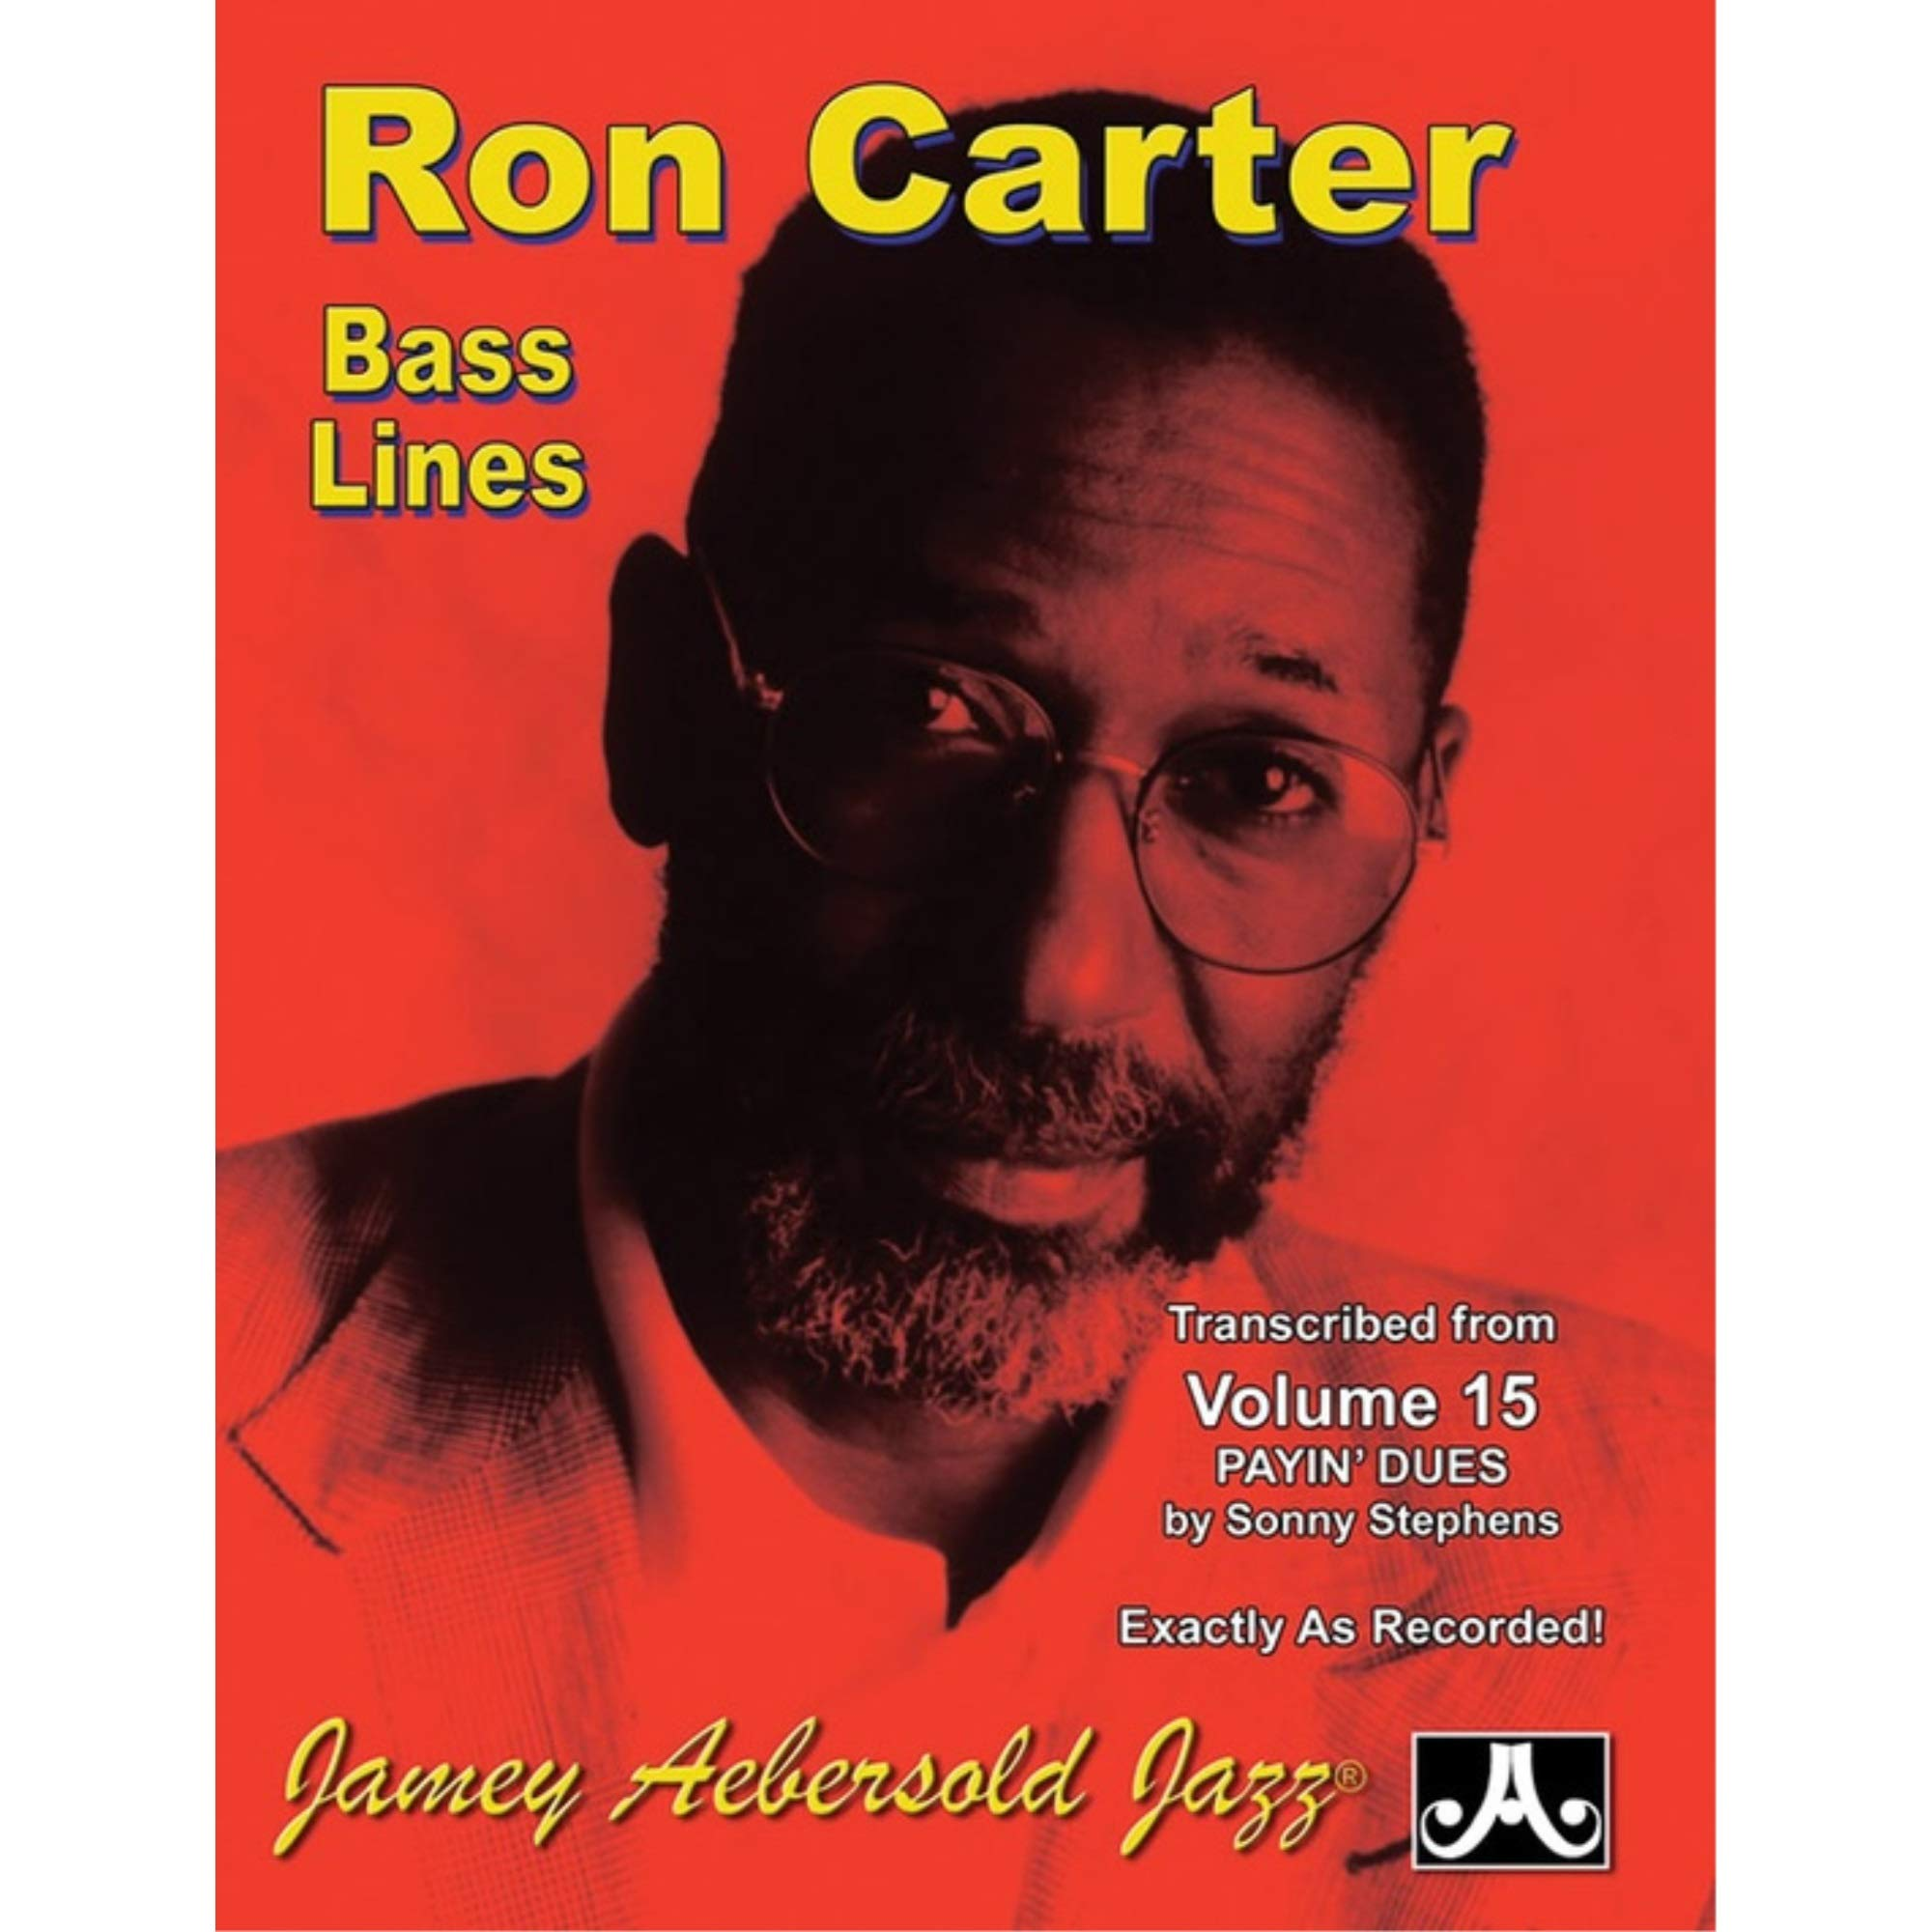 Bass Lines Aebersold 15 Payin Dues By Ron Carter: Amazon.es ...